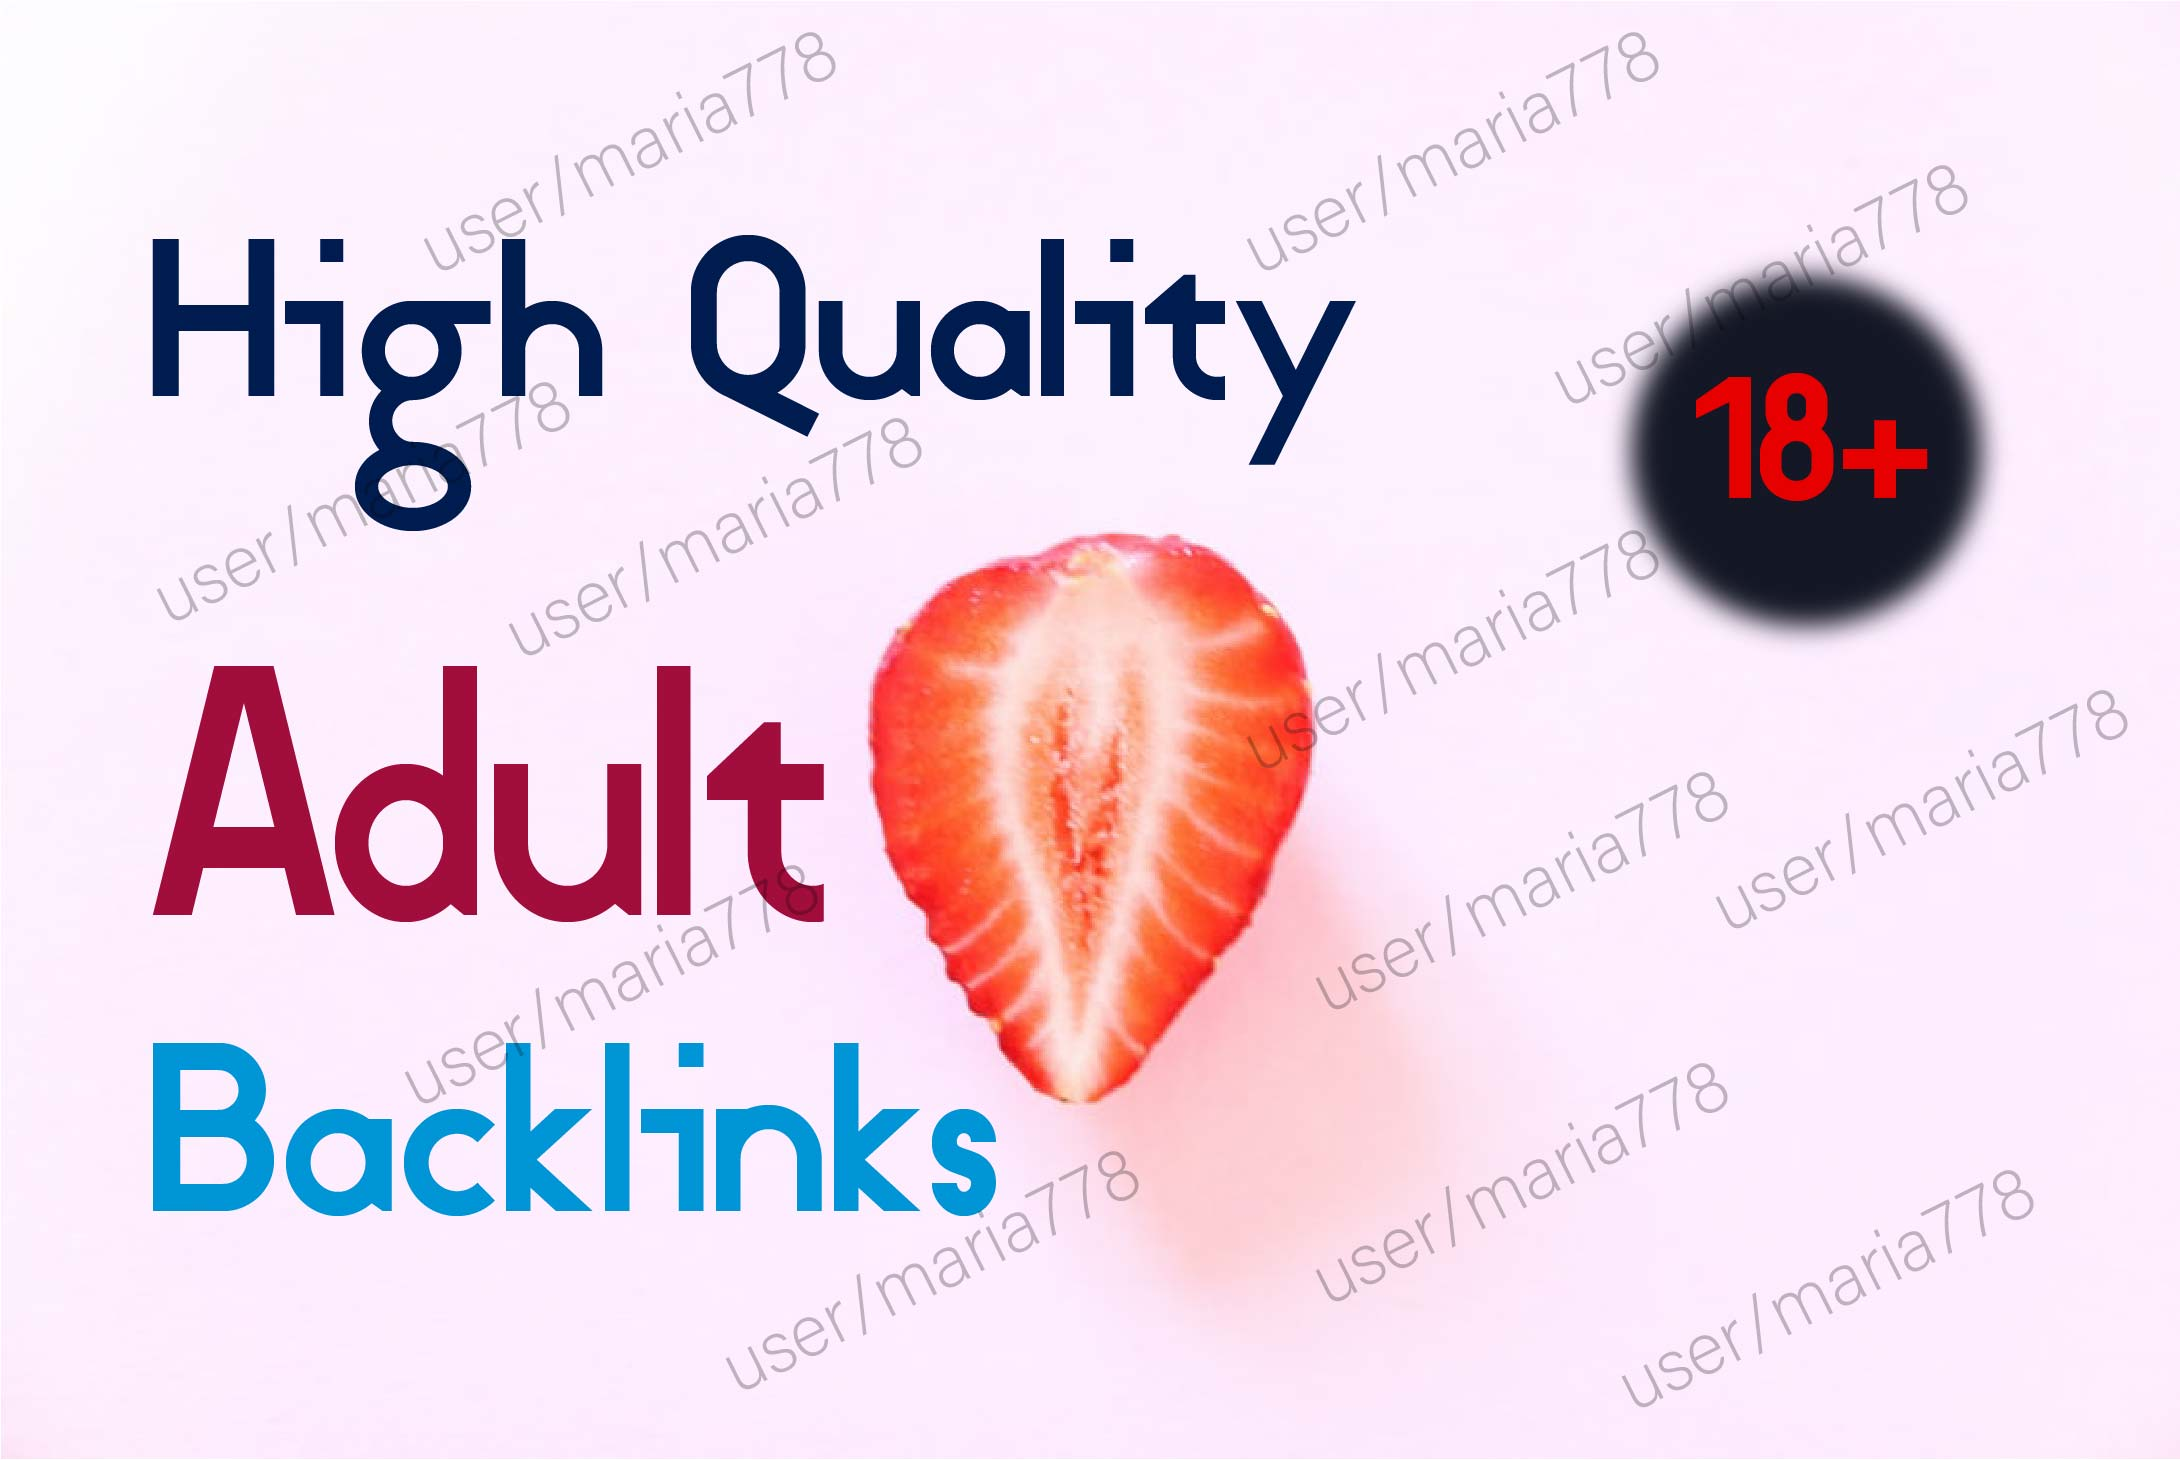 create 300+ high quality adult backlinks for your website and google ranking seo